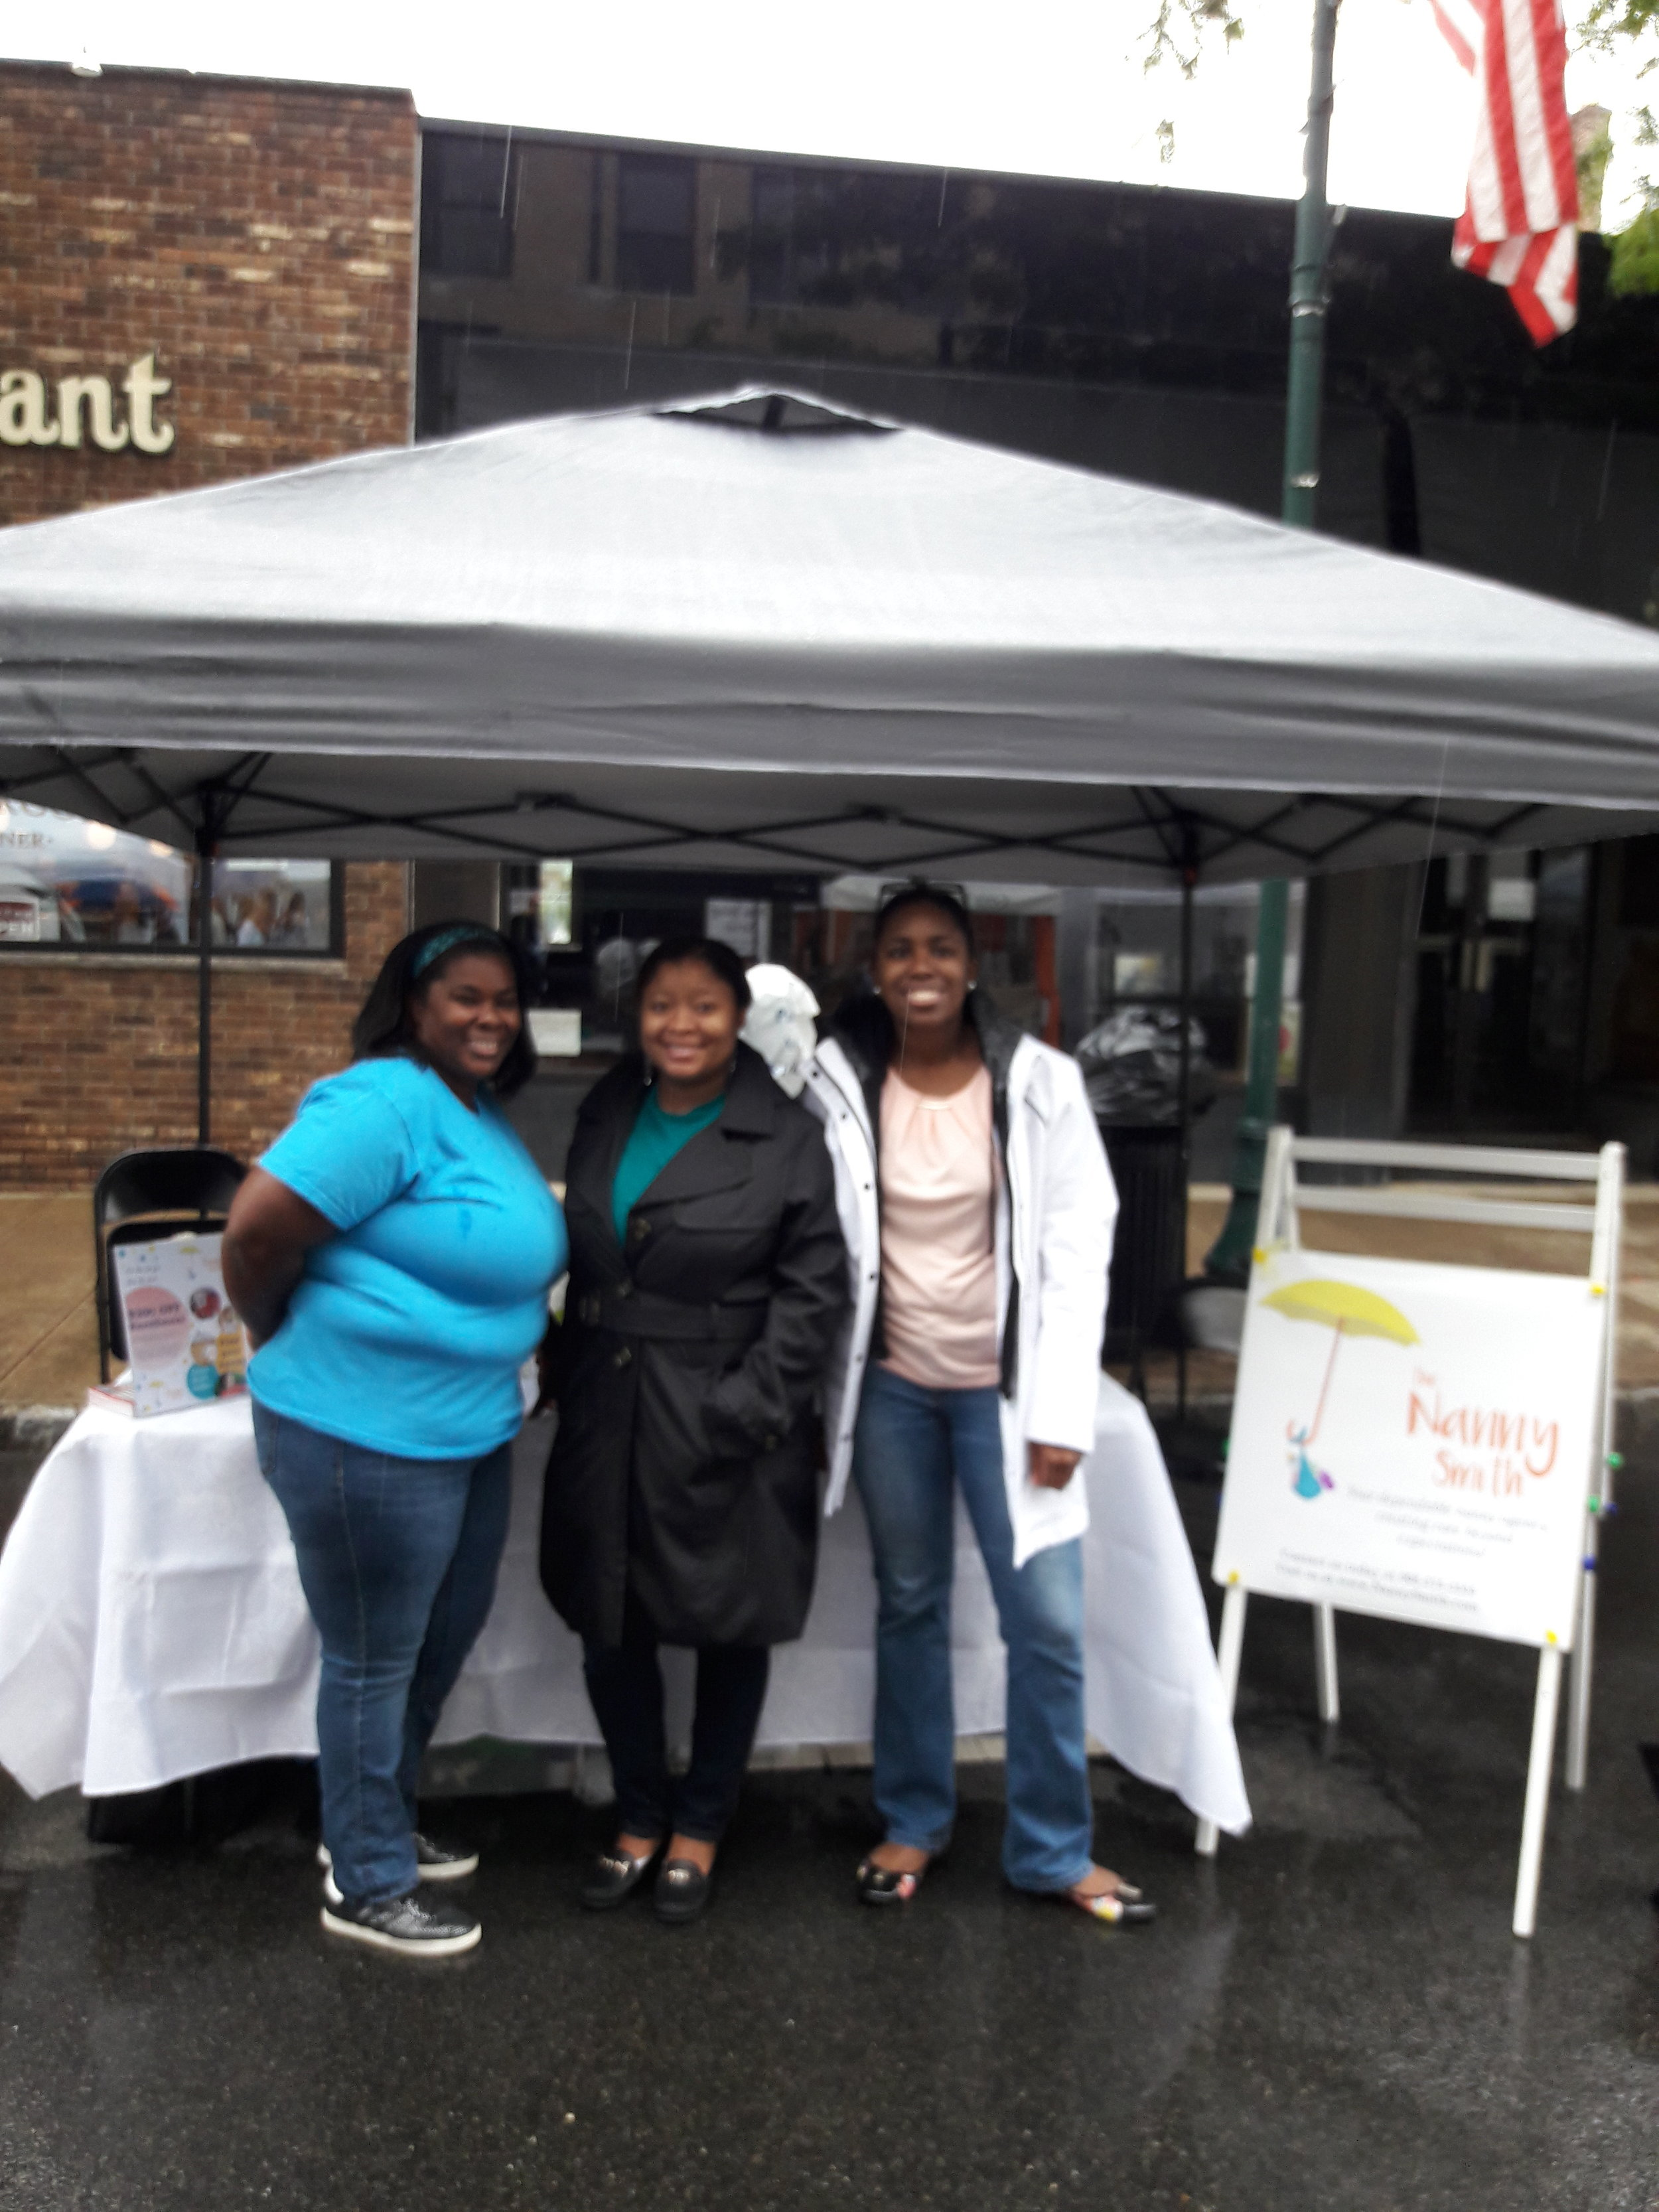 Meet our street fair and event staff members